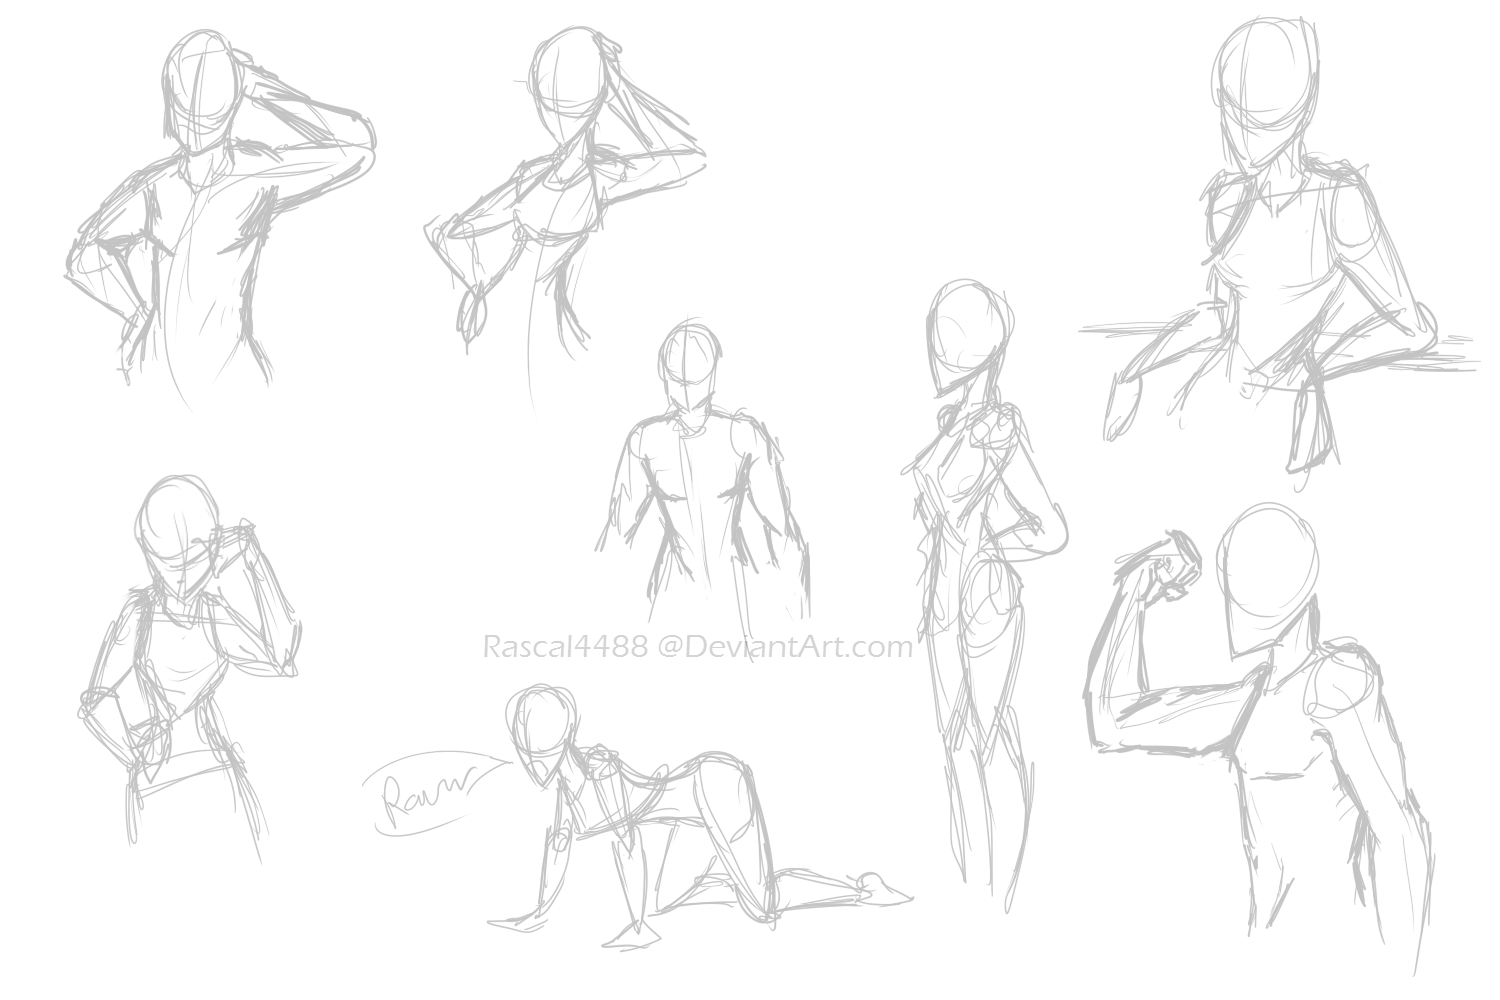 1500x1000 Human Anatomy Sketches By Rascal4488